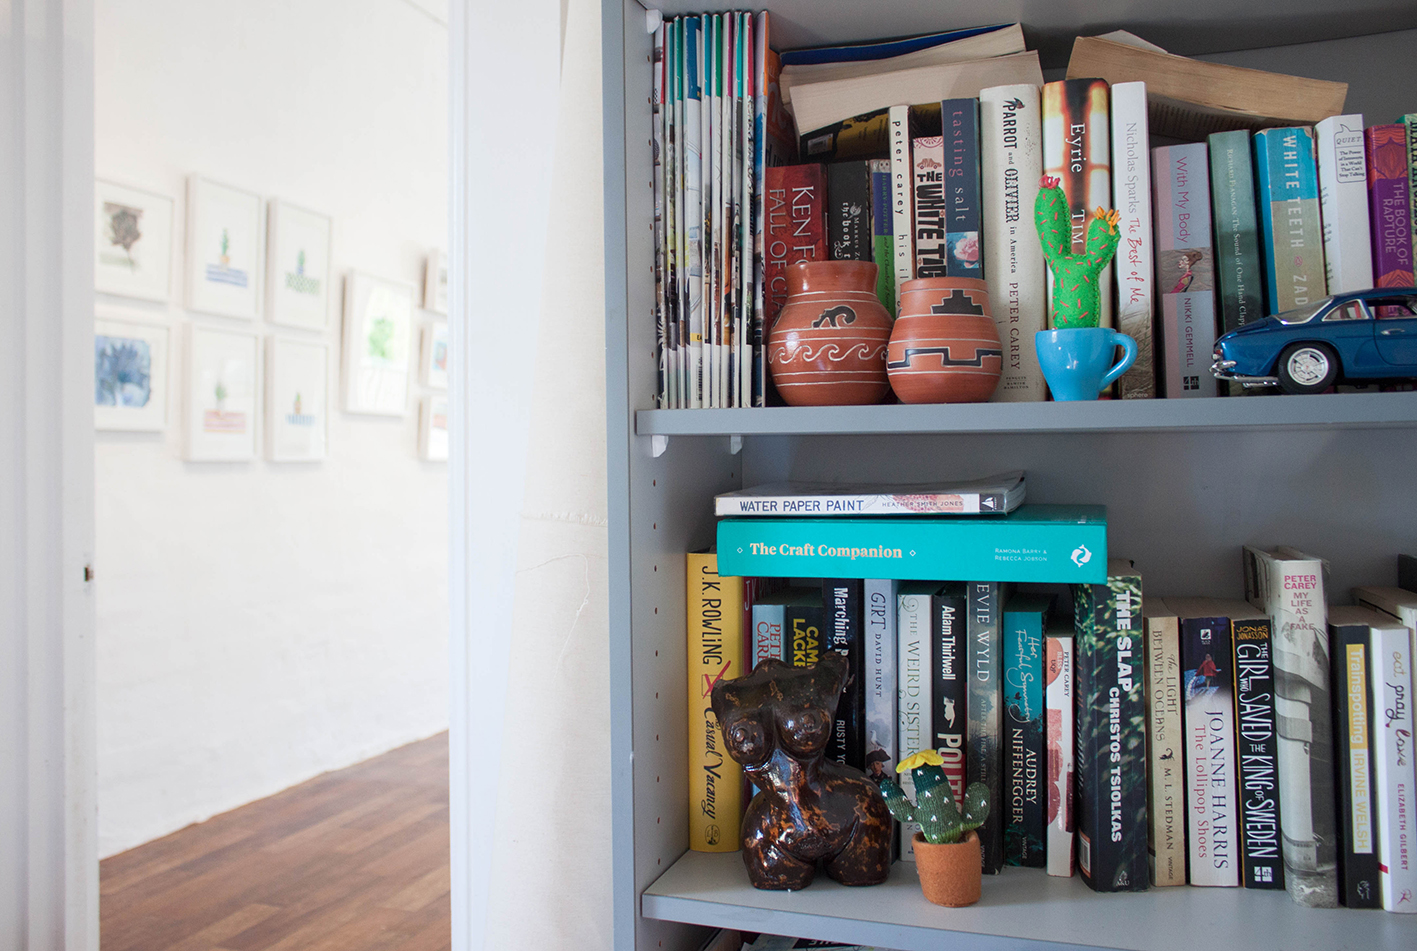 Australian artist Madeline Young studio visit and home tour - The corner Store Gallery